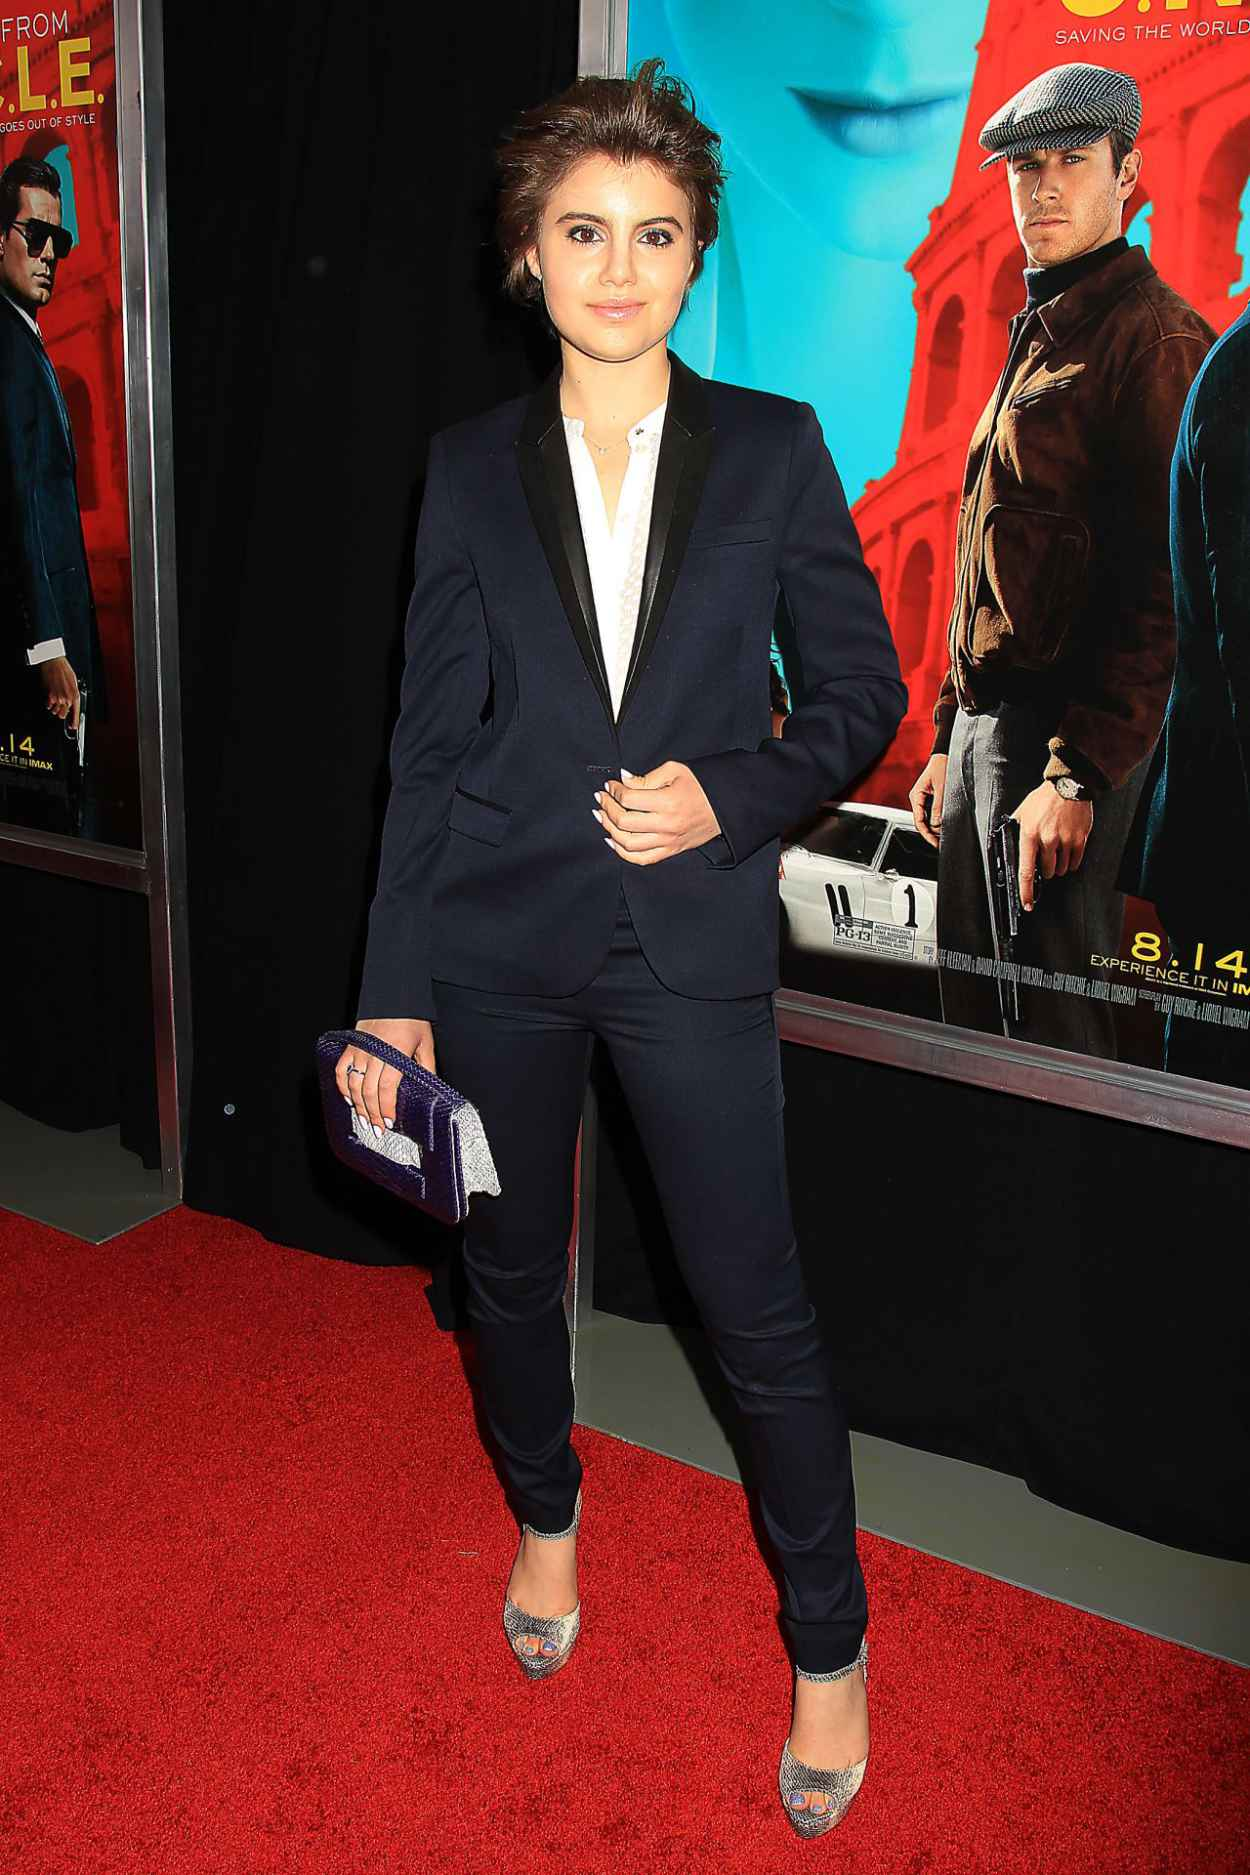 Sami Gayle - The Man From U.N.C.L.E. Premiere in New York City-5